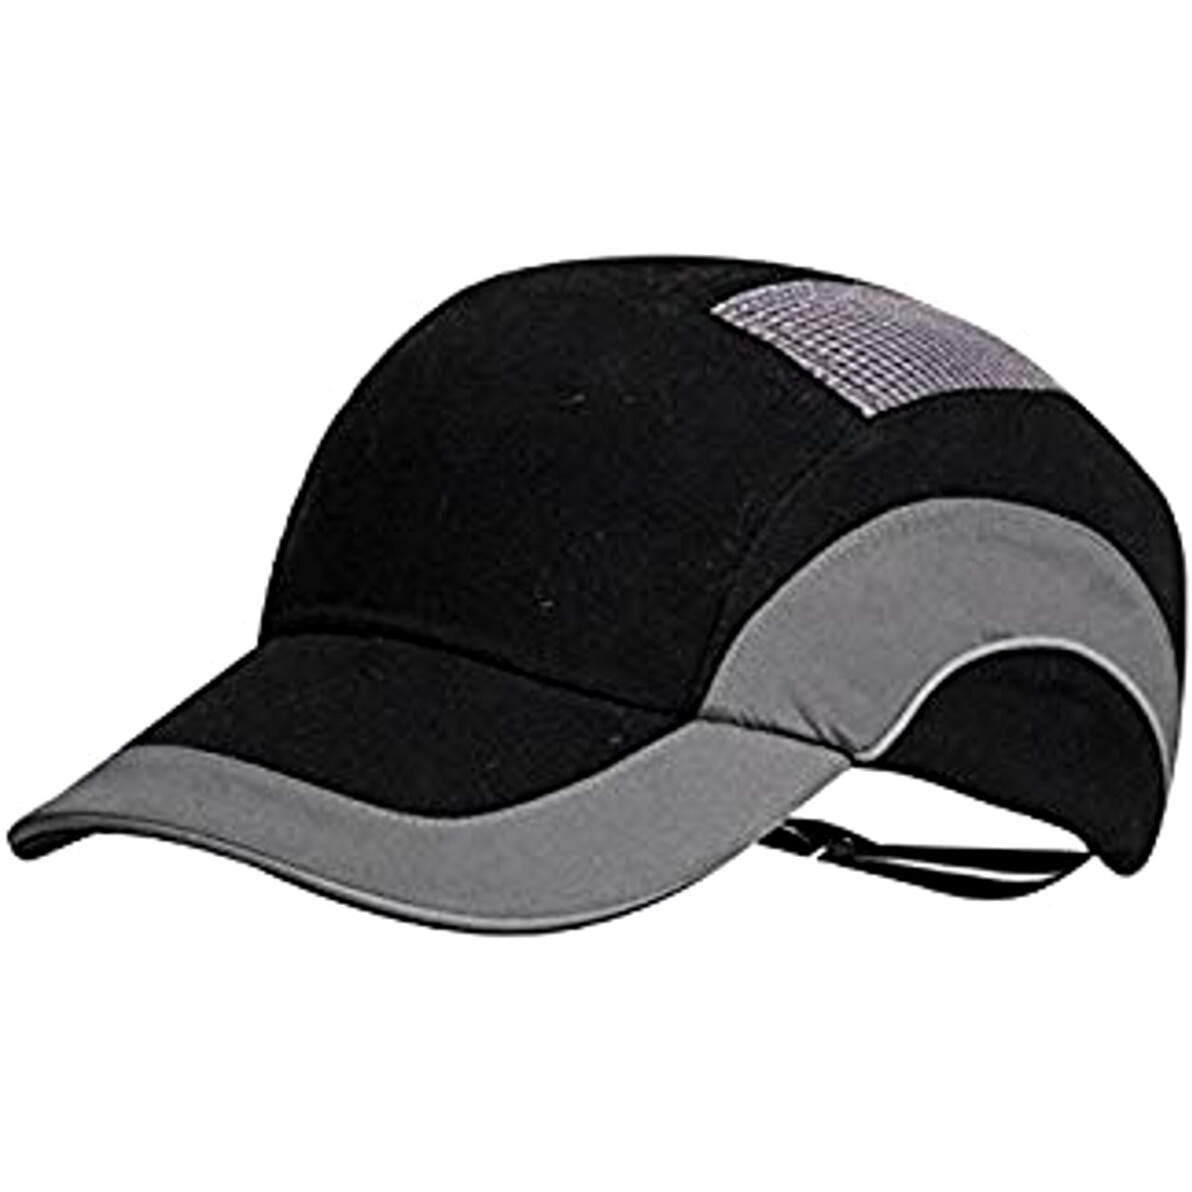 5bd873440 JSP HardCap A1 Plus Protective Bump Cap - Black/Grey with 7cm Long Peak